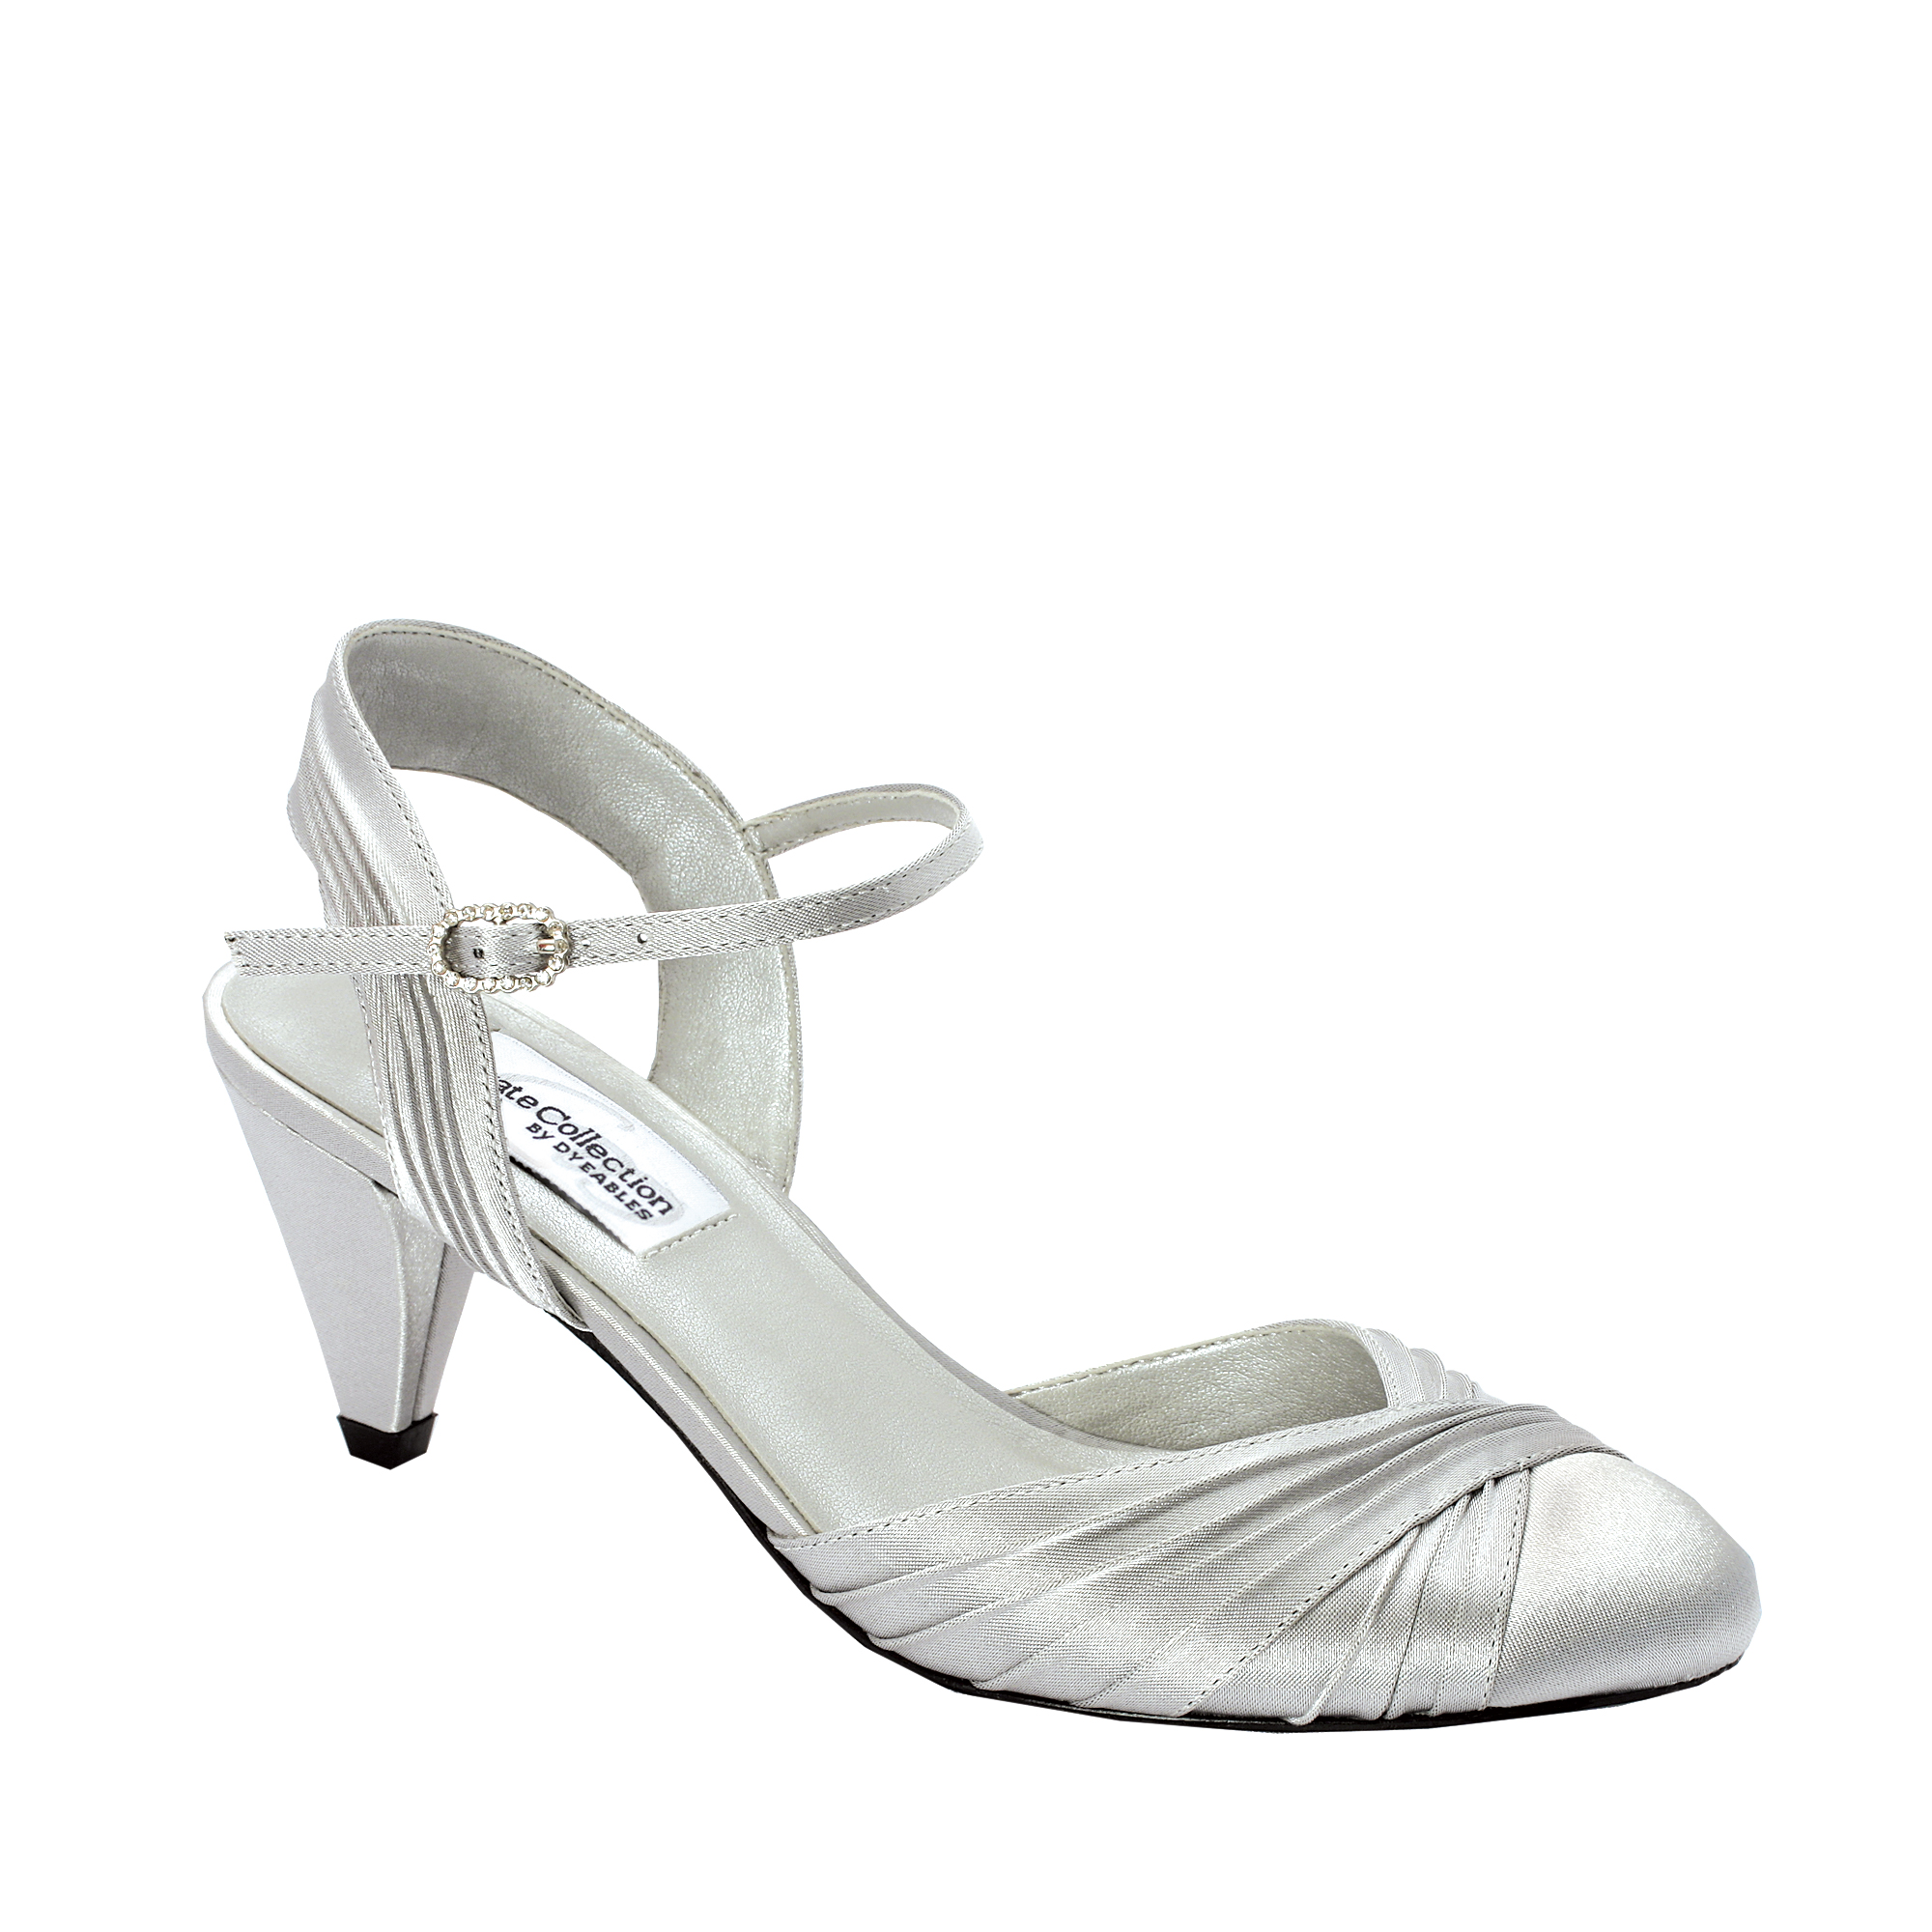 """dyeables alexis silver satin 2 1/4""""heel - dyeable shoe store"""